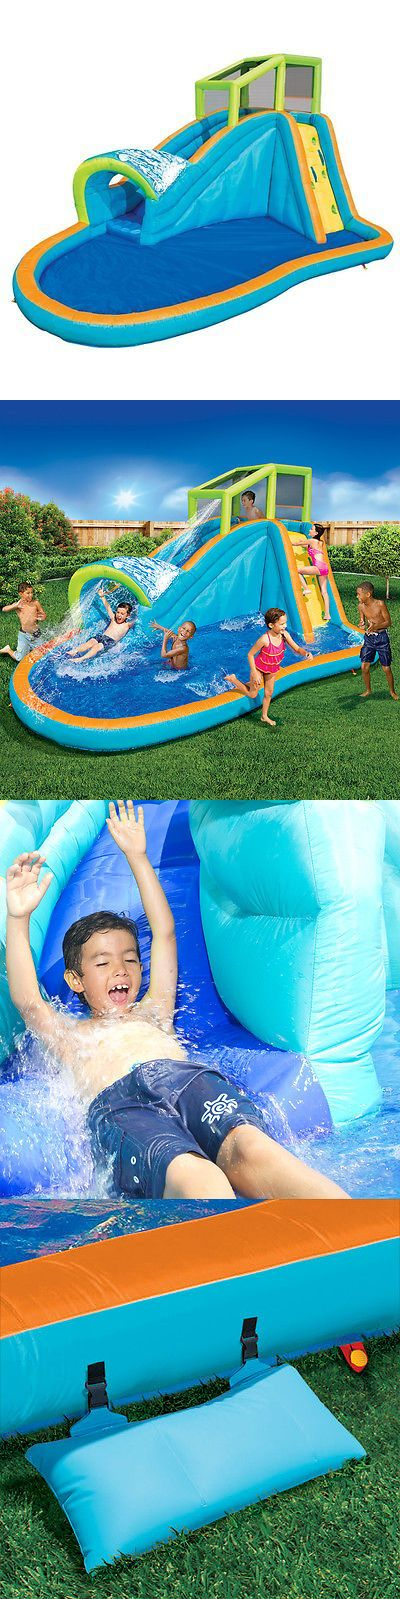 Water Slides 145992: Banzai Inflatable Pipeline Water Slide And Splash Pool Water Park -> BUY IT NOW ONLY: $389.99 on eBay!